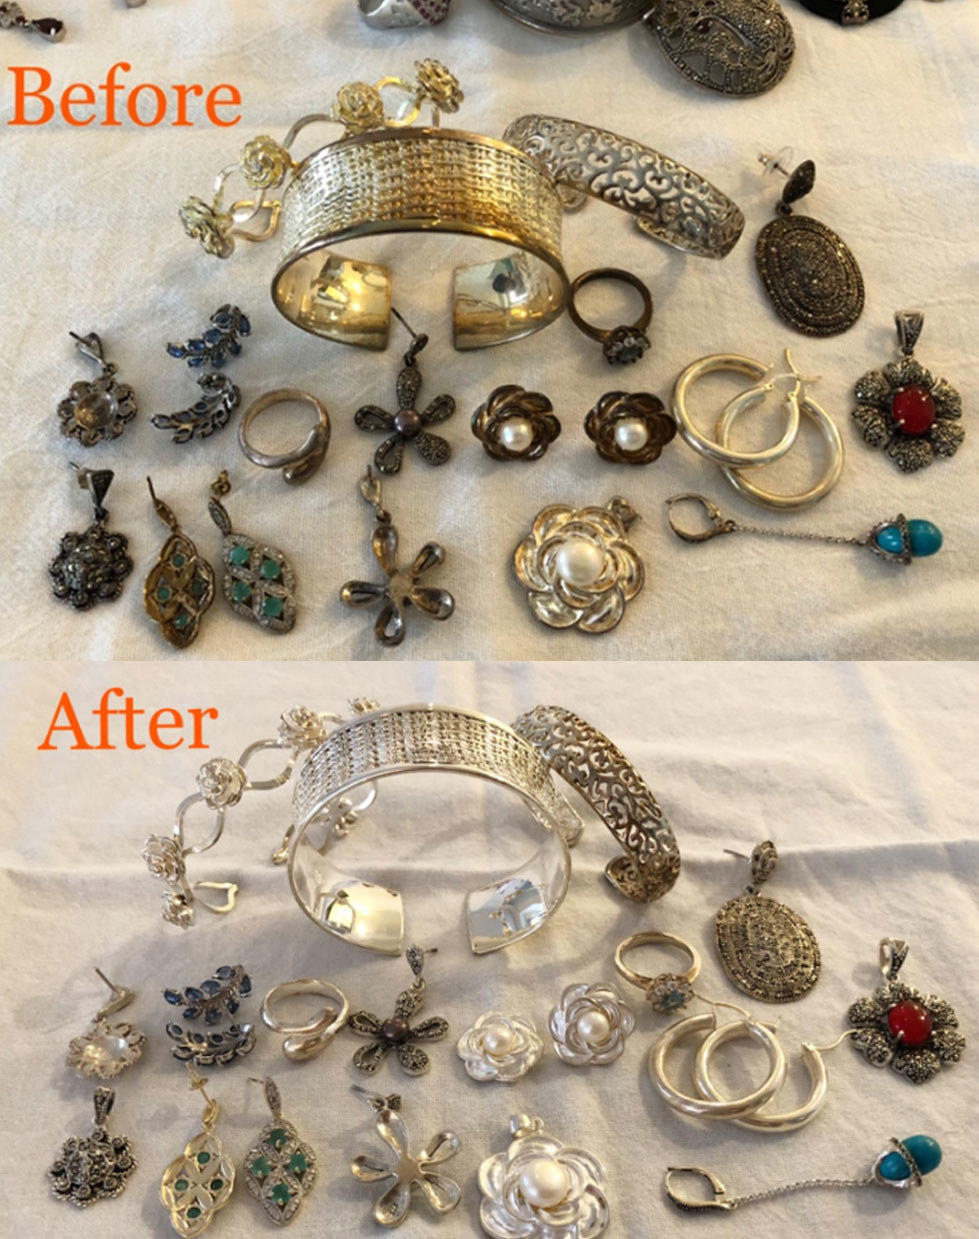 A side by side before and after shot. The before photo has darkened and worn jewelry full of rust, and the after has the same jewelry, which now looks shiny, sparkly, and new